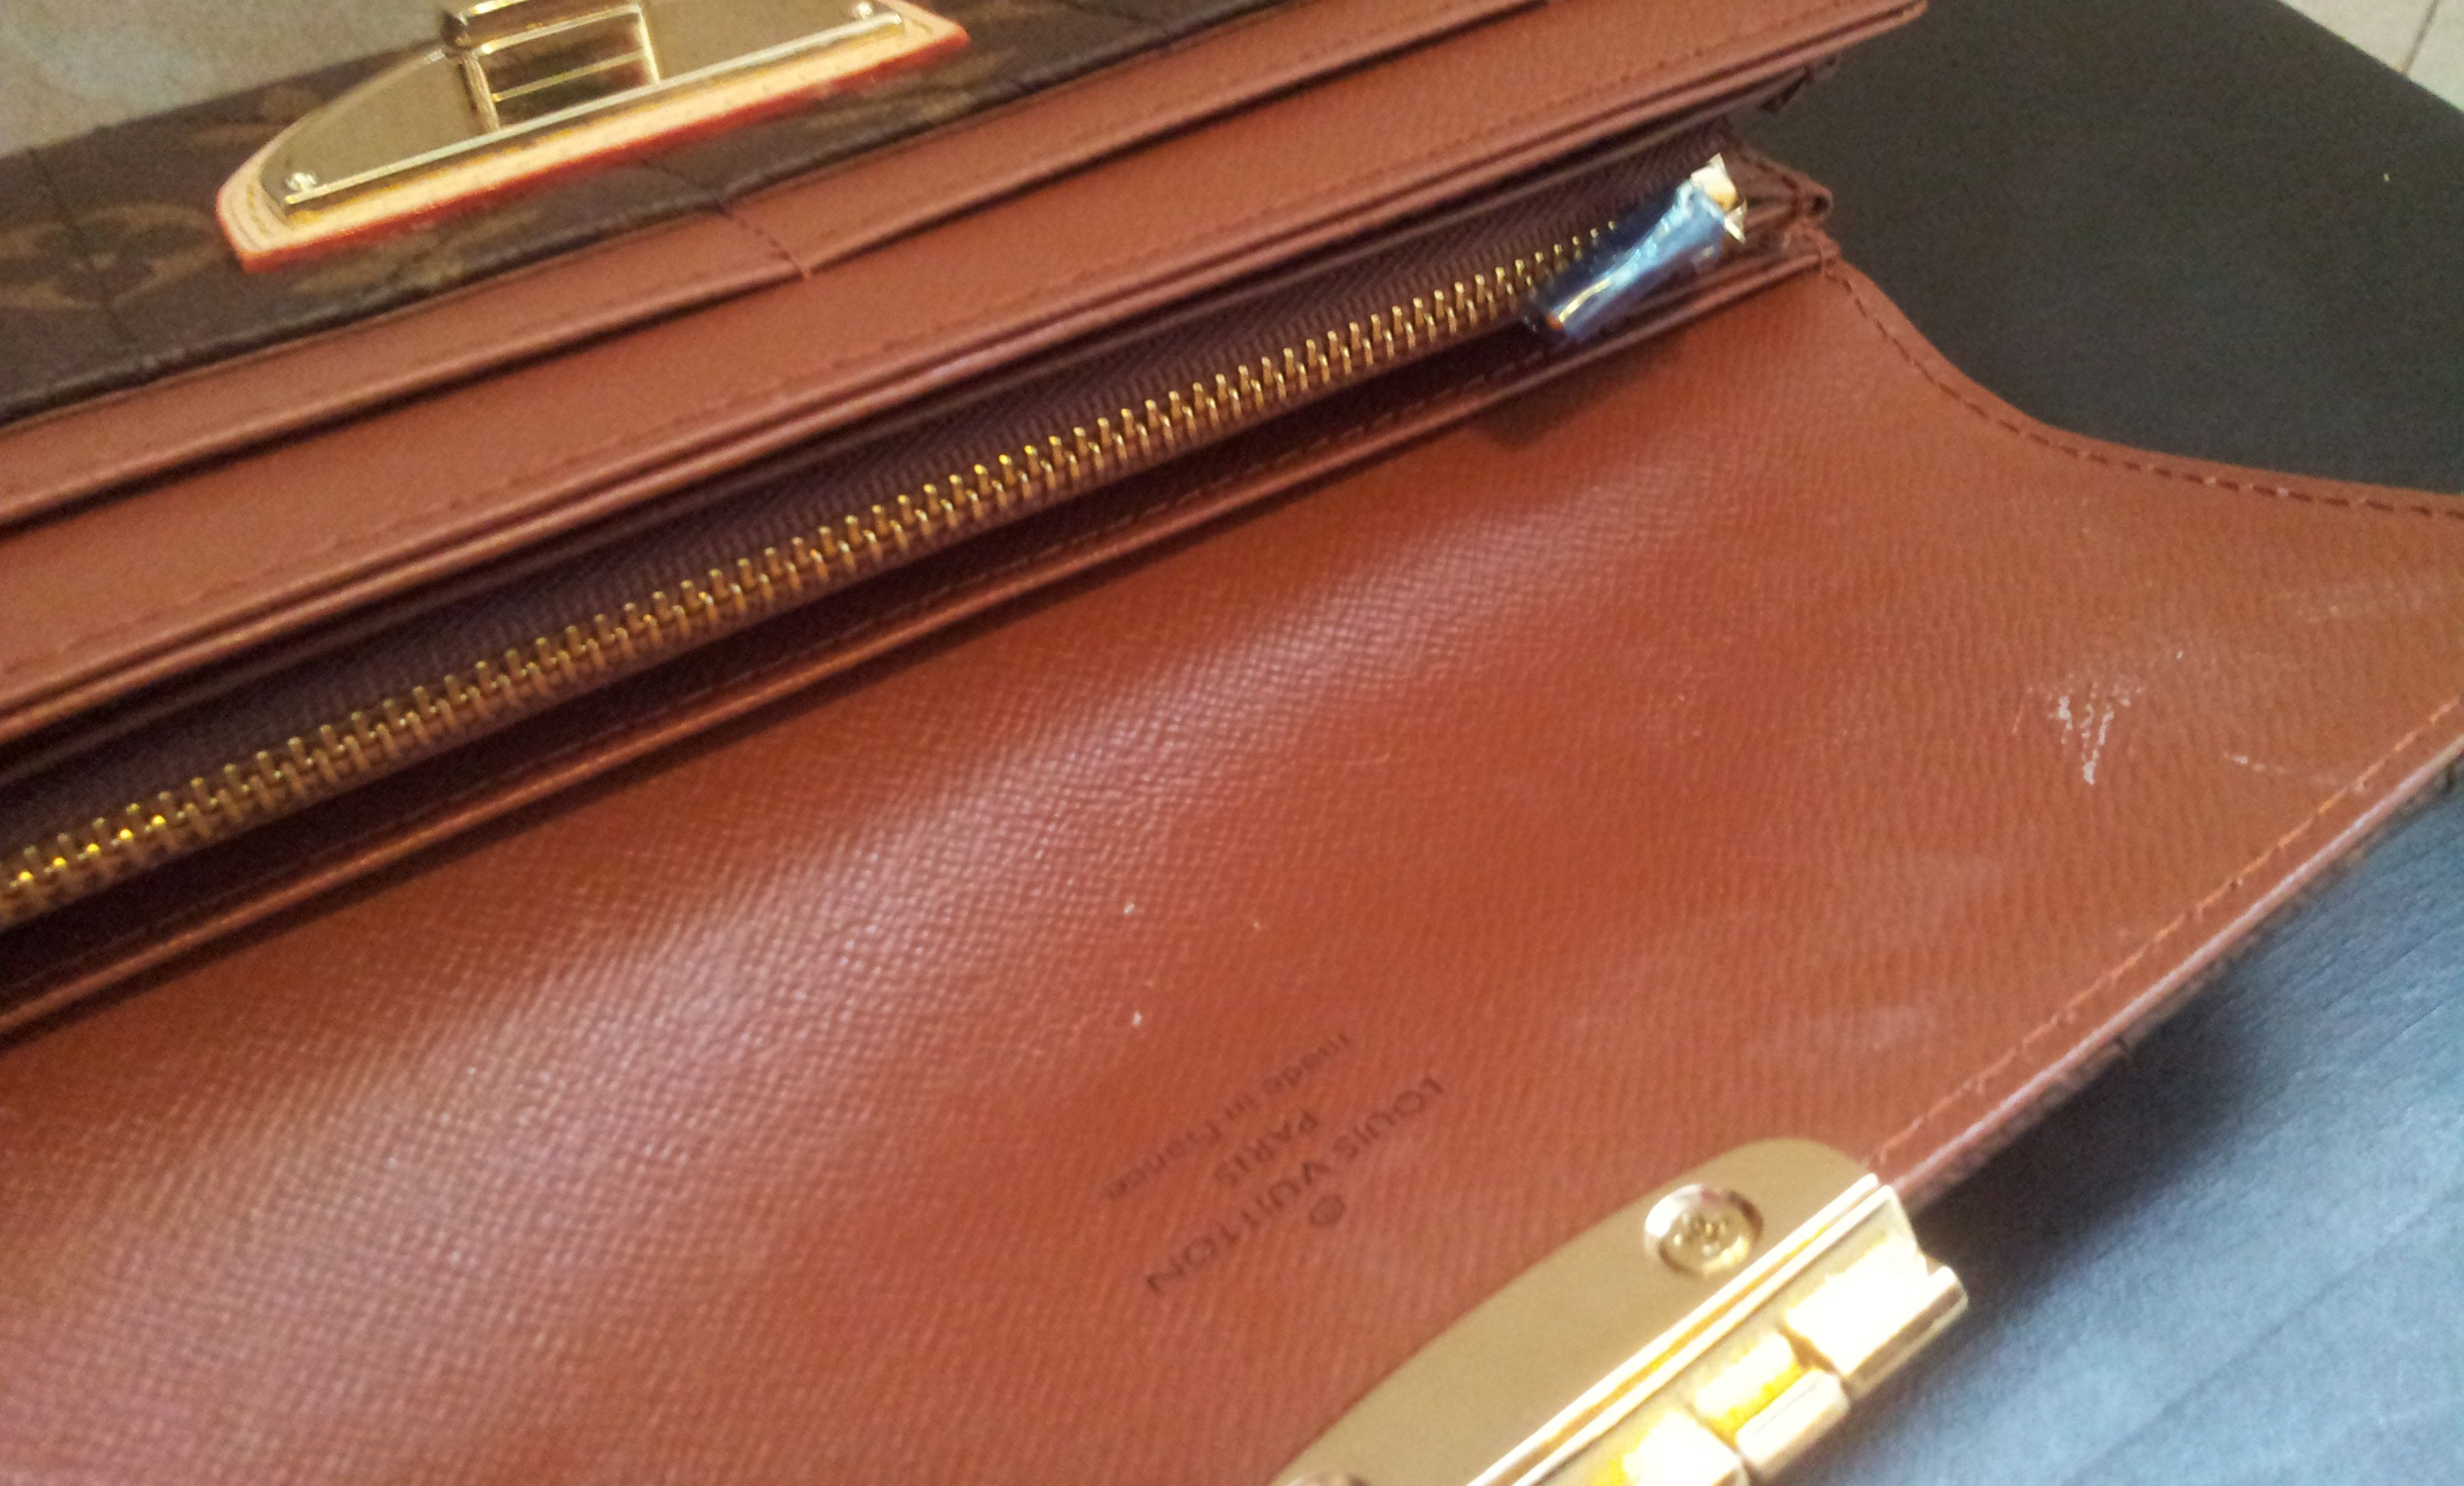 separation shoes f9743 4b187 Louis Vuitton Monogram Canvas Etoile Sarah Wallet M66556 ...